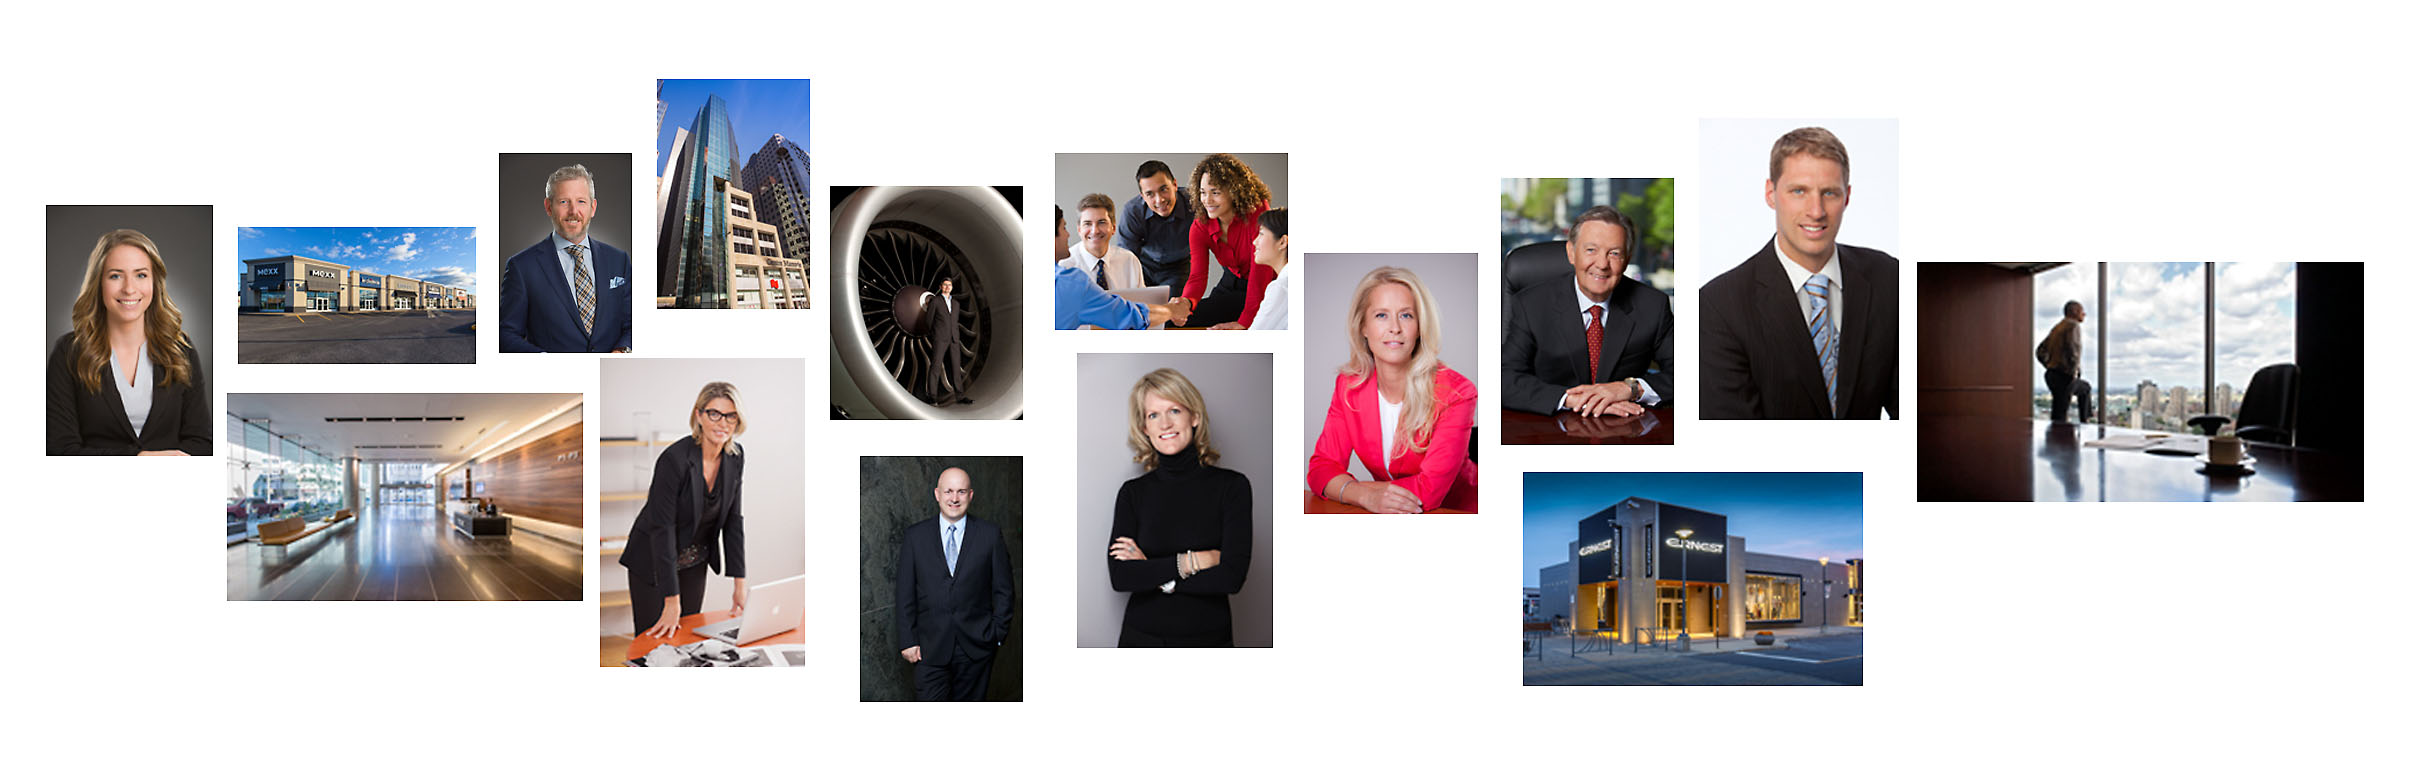 pierre-arsenault-corporate-photography-collage-2